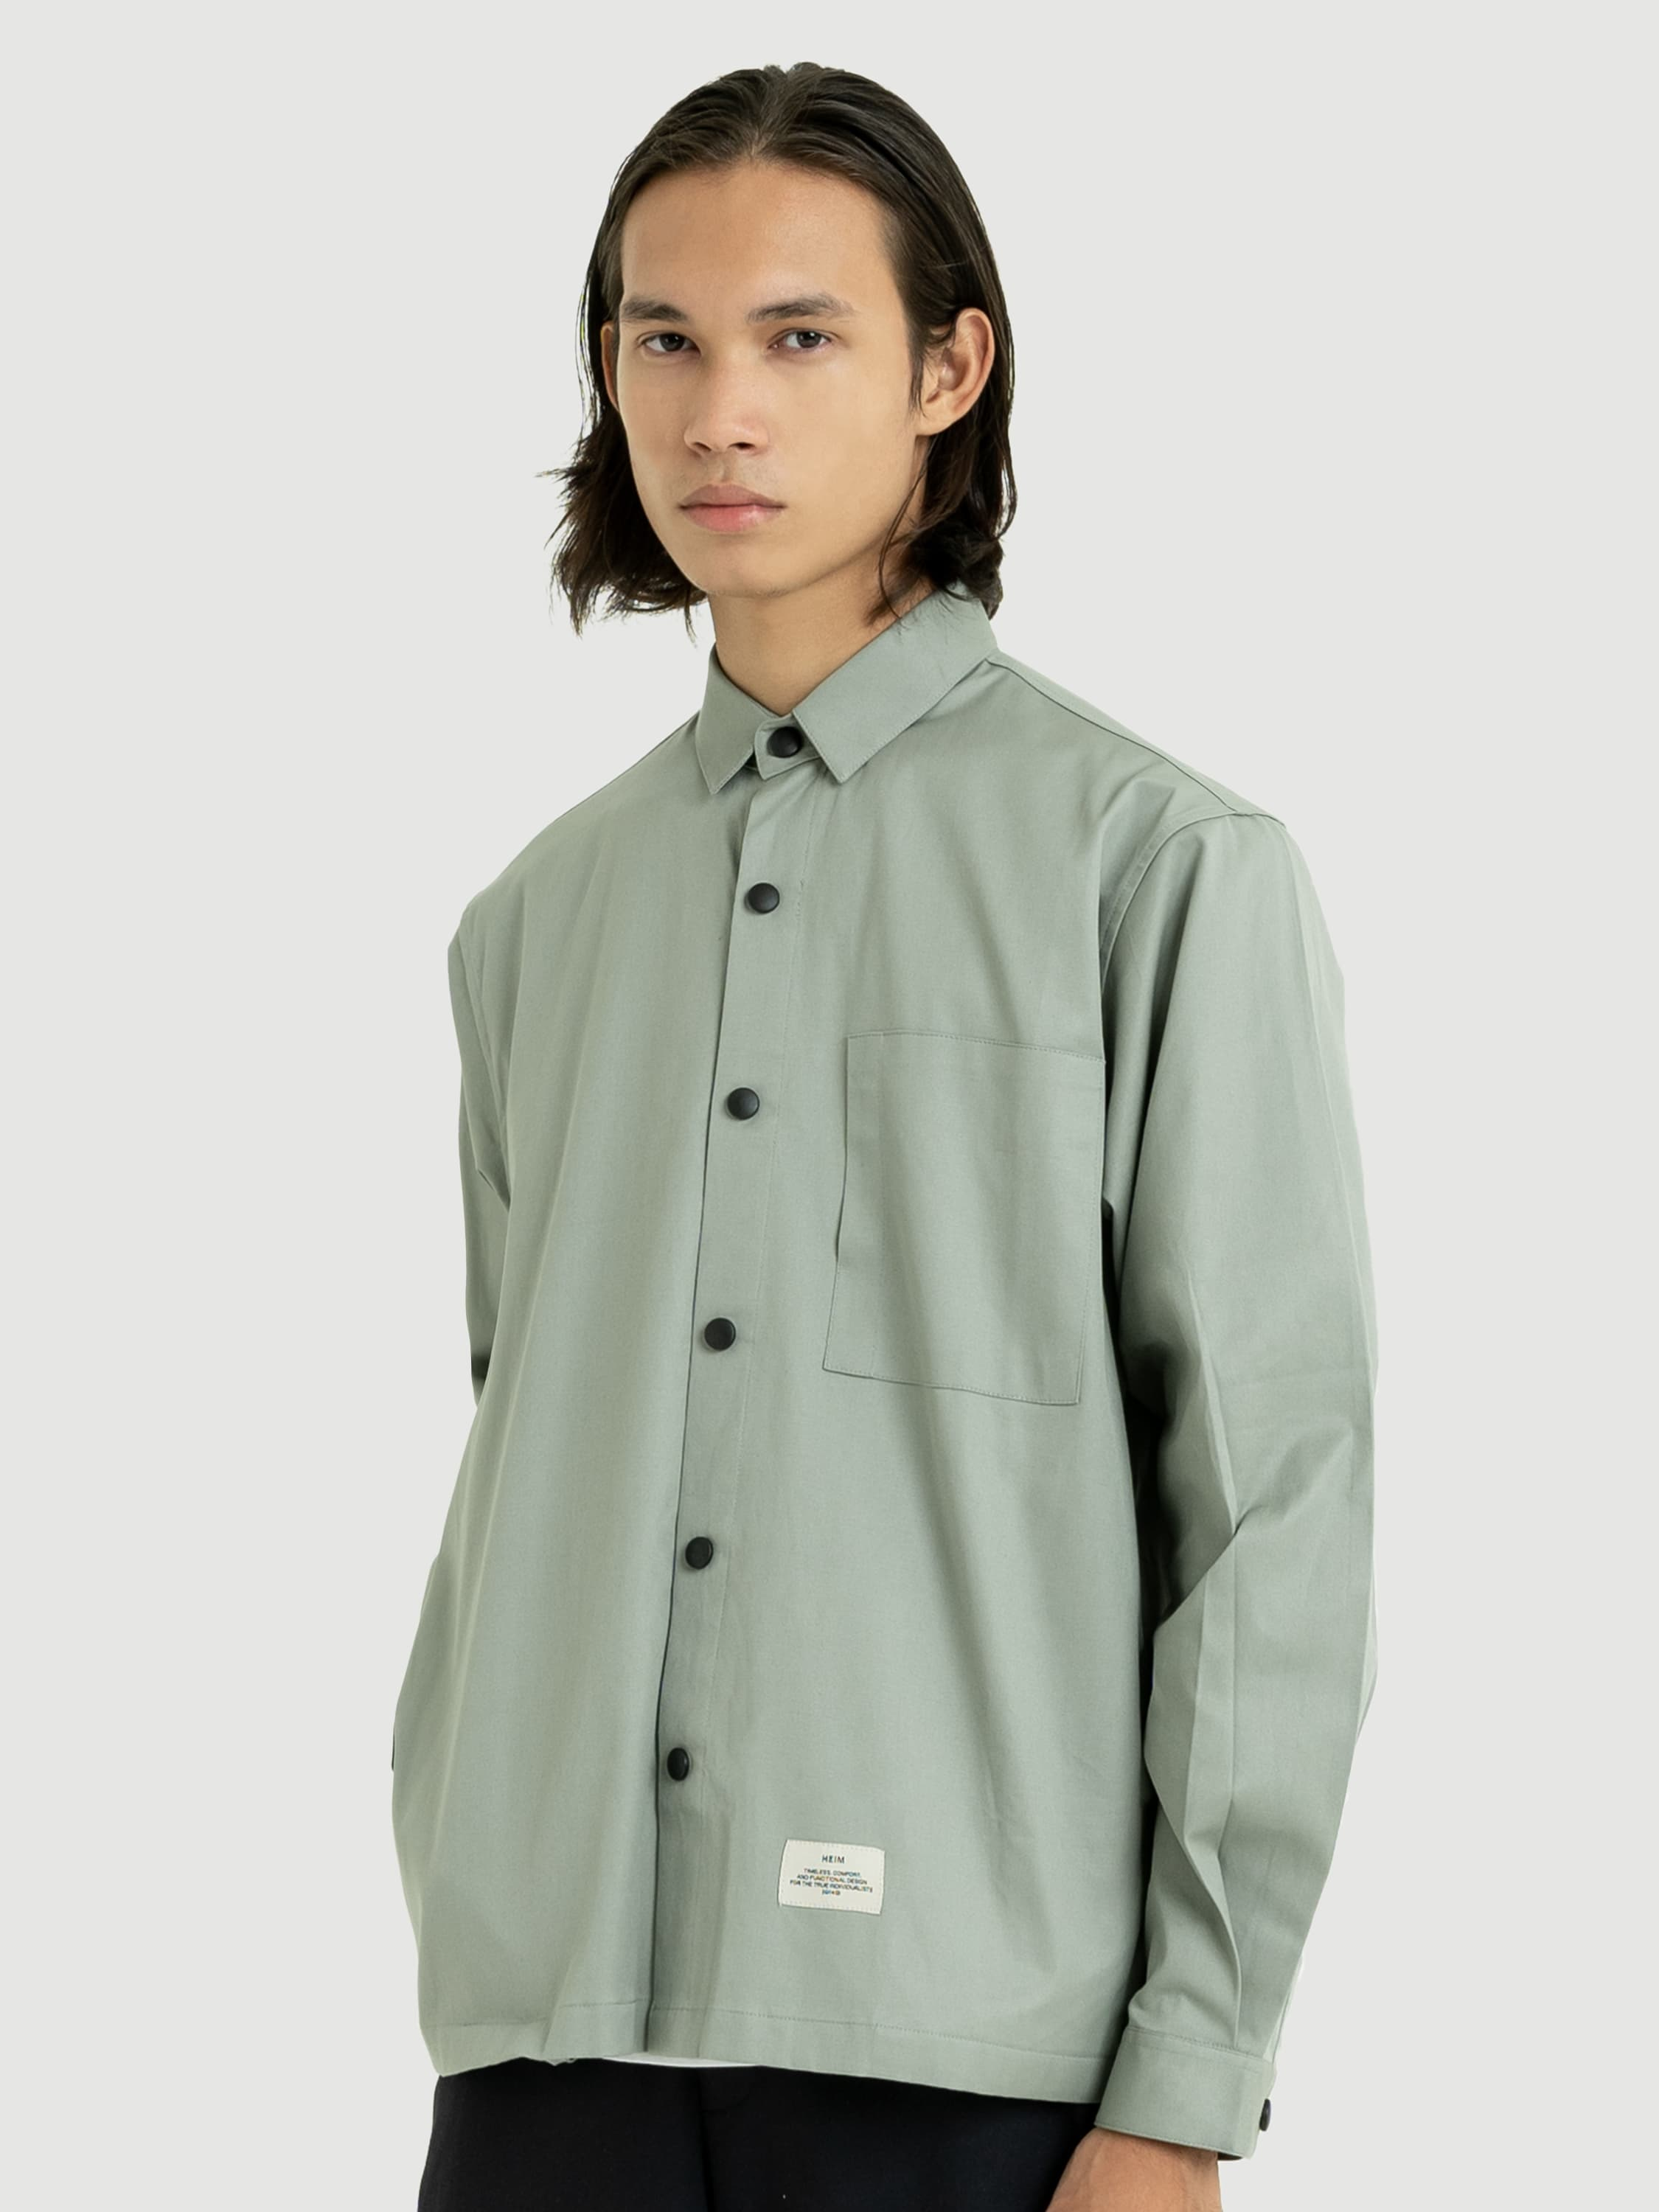 Regular Mint Overshirt